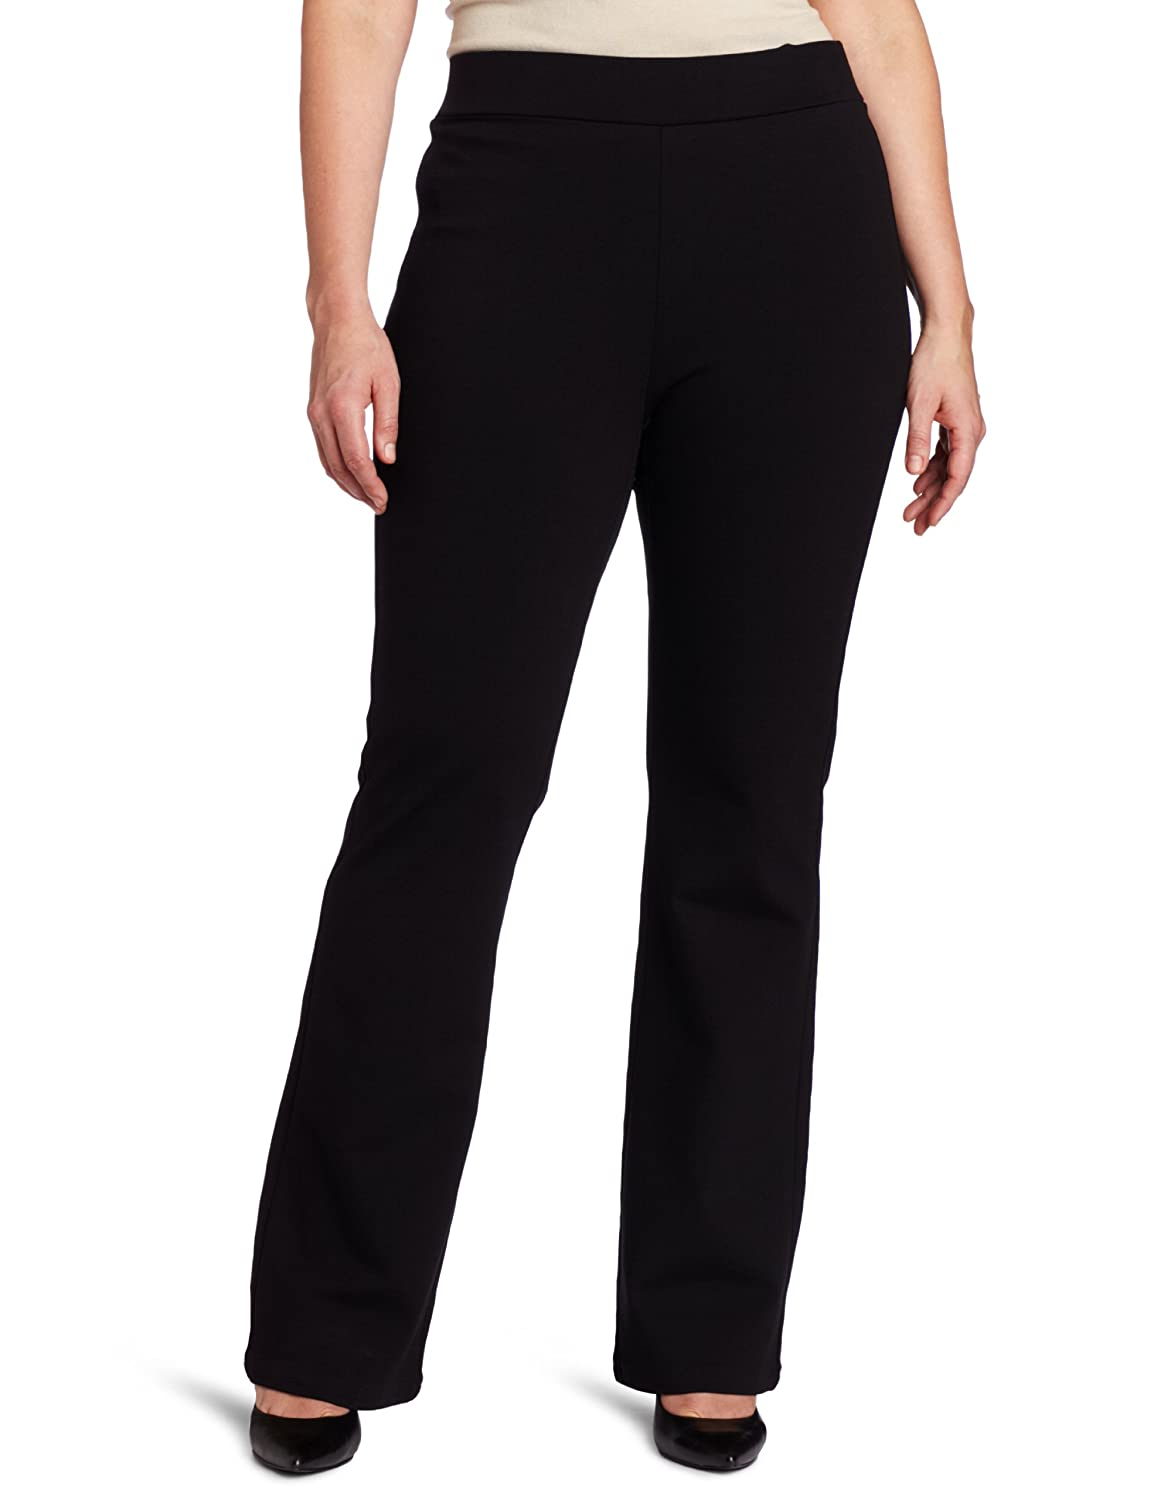 NYDJ Women's Alina Capri Jeans in Premium Lightweight Denim NYDJ Women's Collection W11980